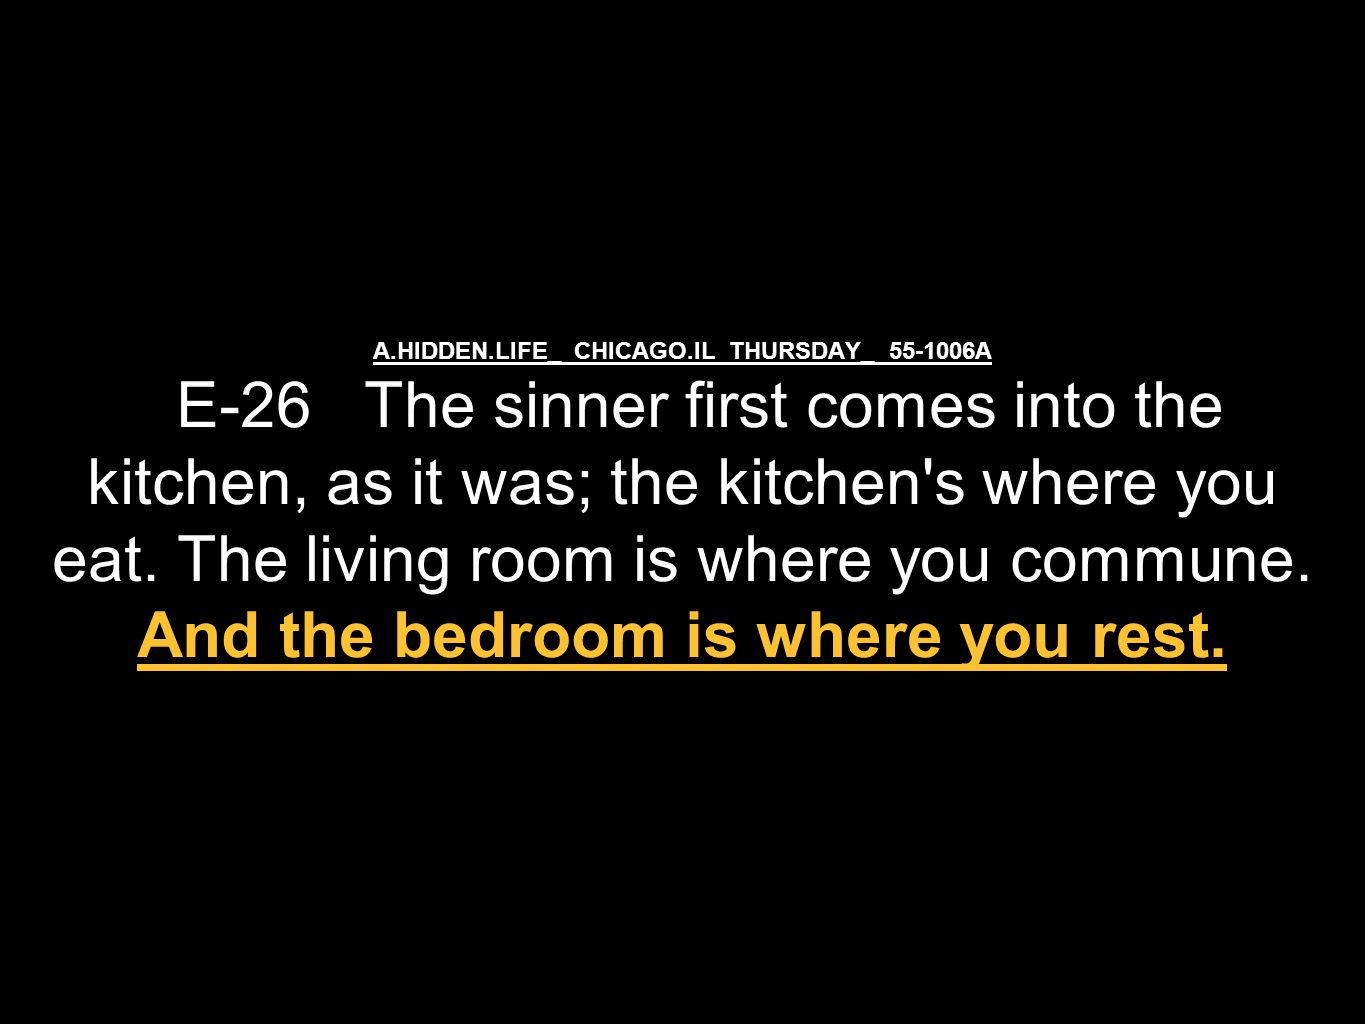 A.HIDDEN.LIFE_ CHICAGO.IL THURSDAY_ 55-1006A E-26 The sinner first comes into the kitchen, as it was; the kitchen s where you eat.